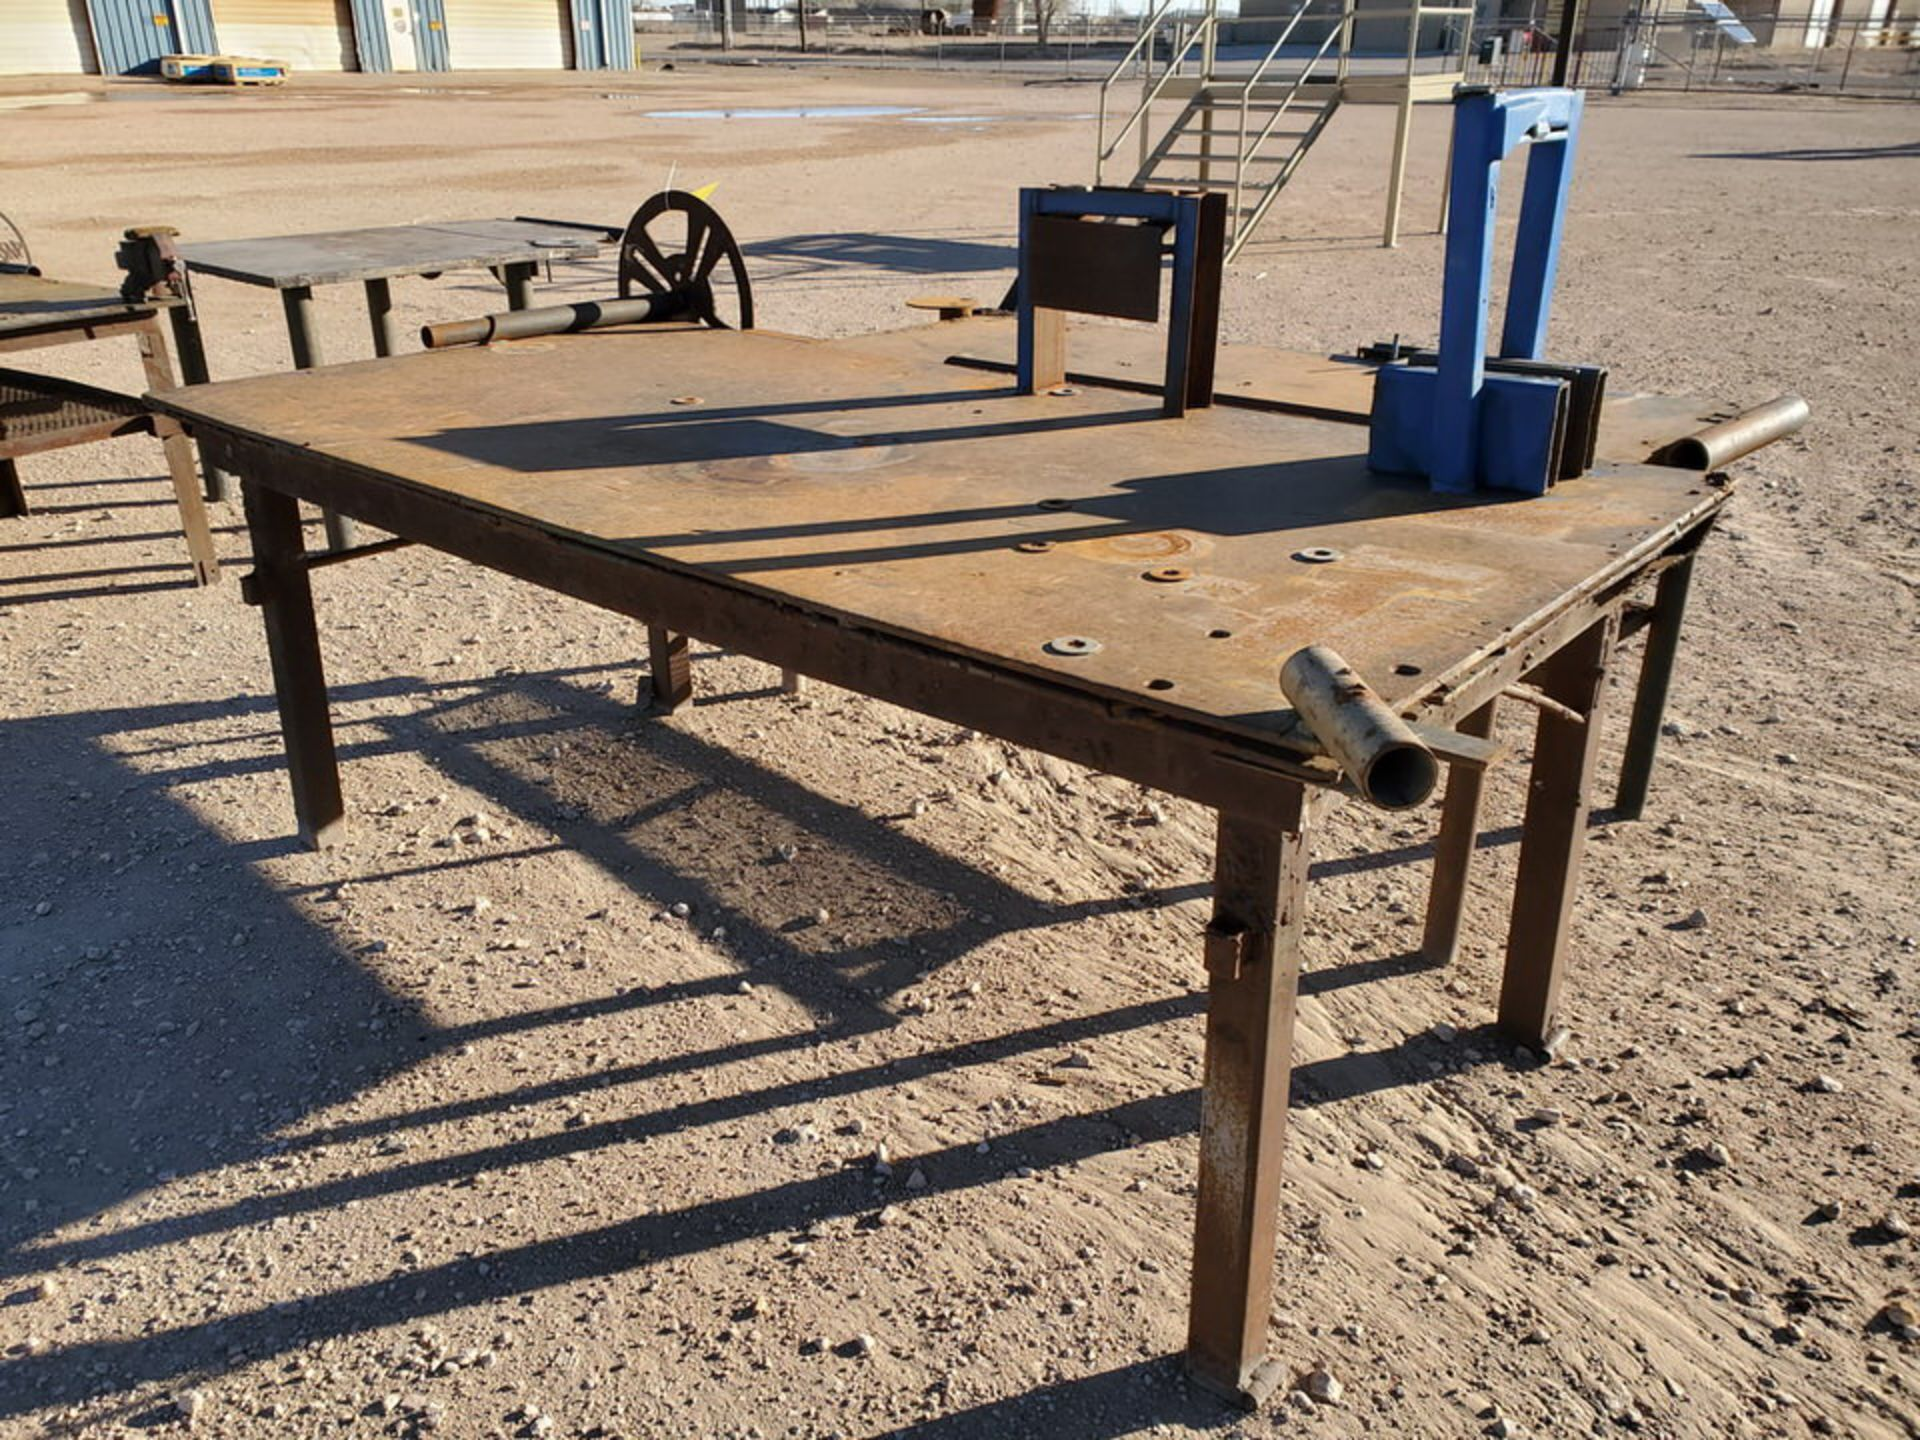 "(2) Stl Welding Tables (1) 48-1/2"" x 96"" x 37""H; (1) 37"" x 78"" x 34-1/2""H - Image 2 of 4"